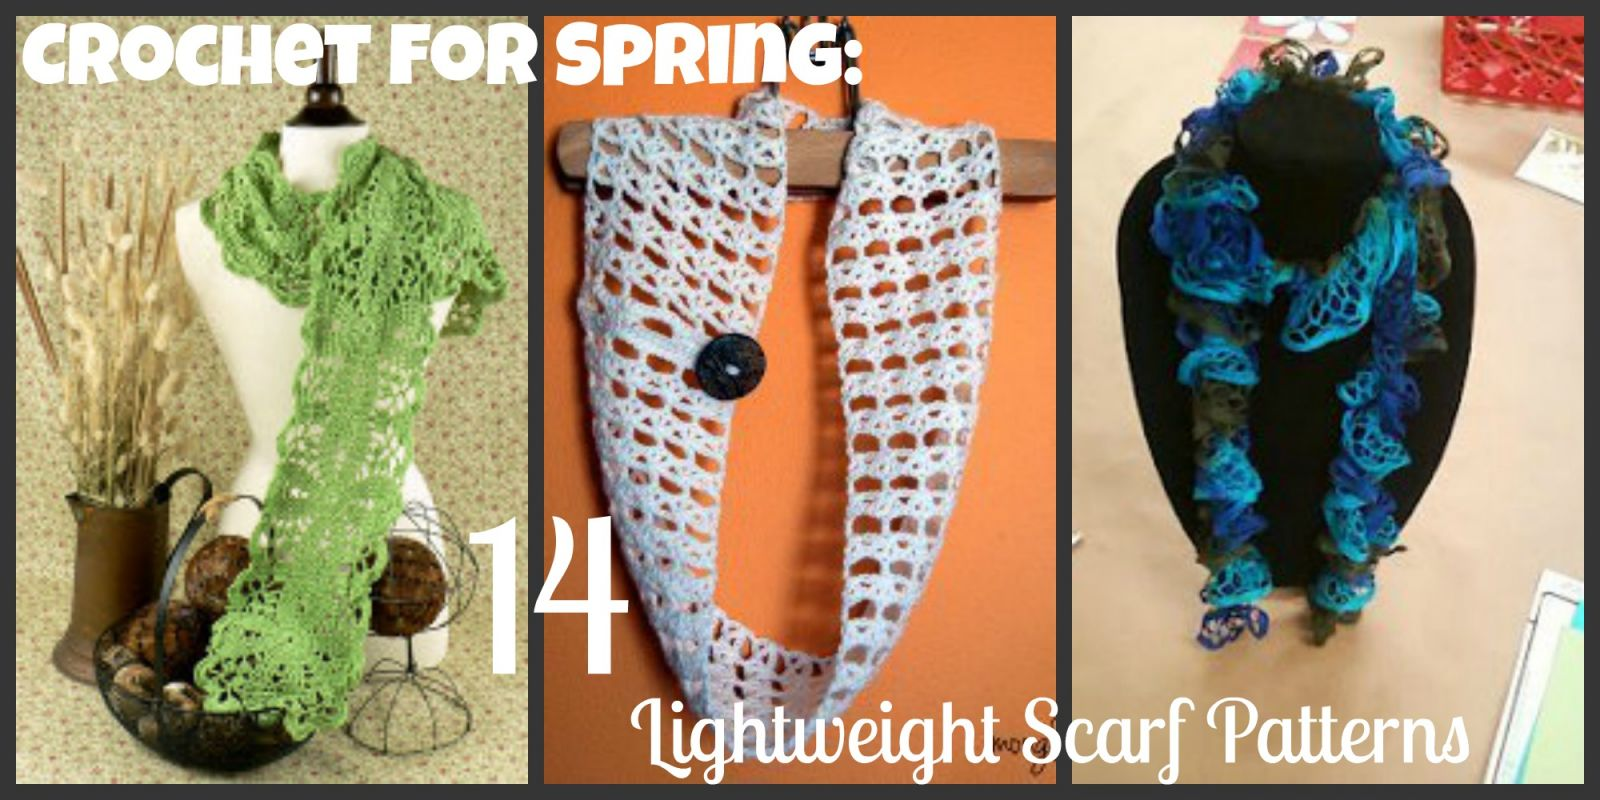 Crochet for Spring: 14 Lightweight Scarf Patterns